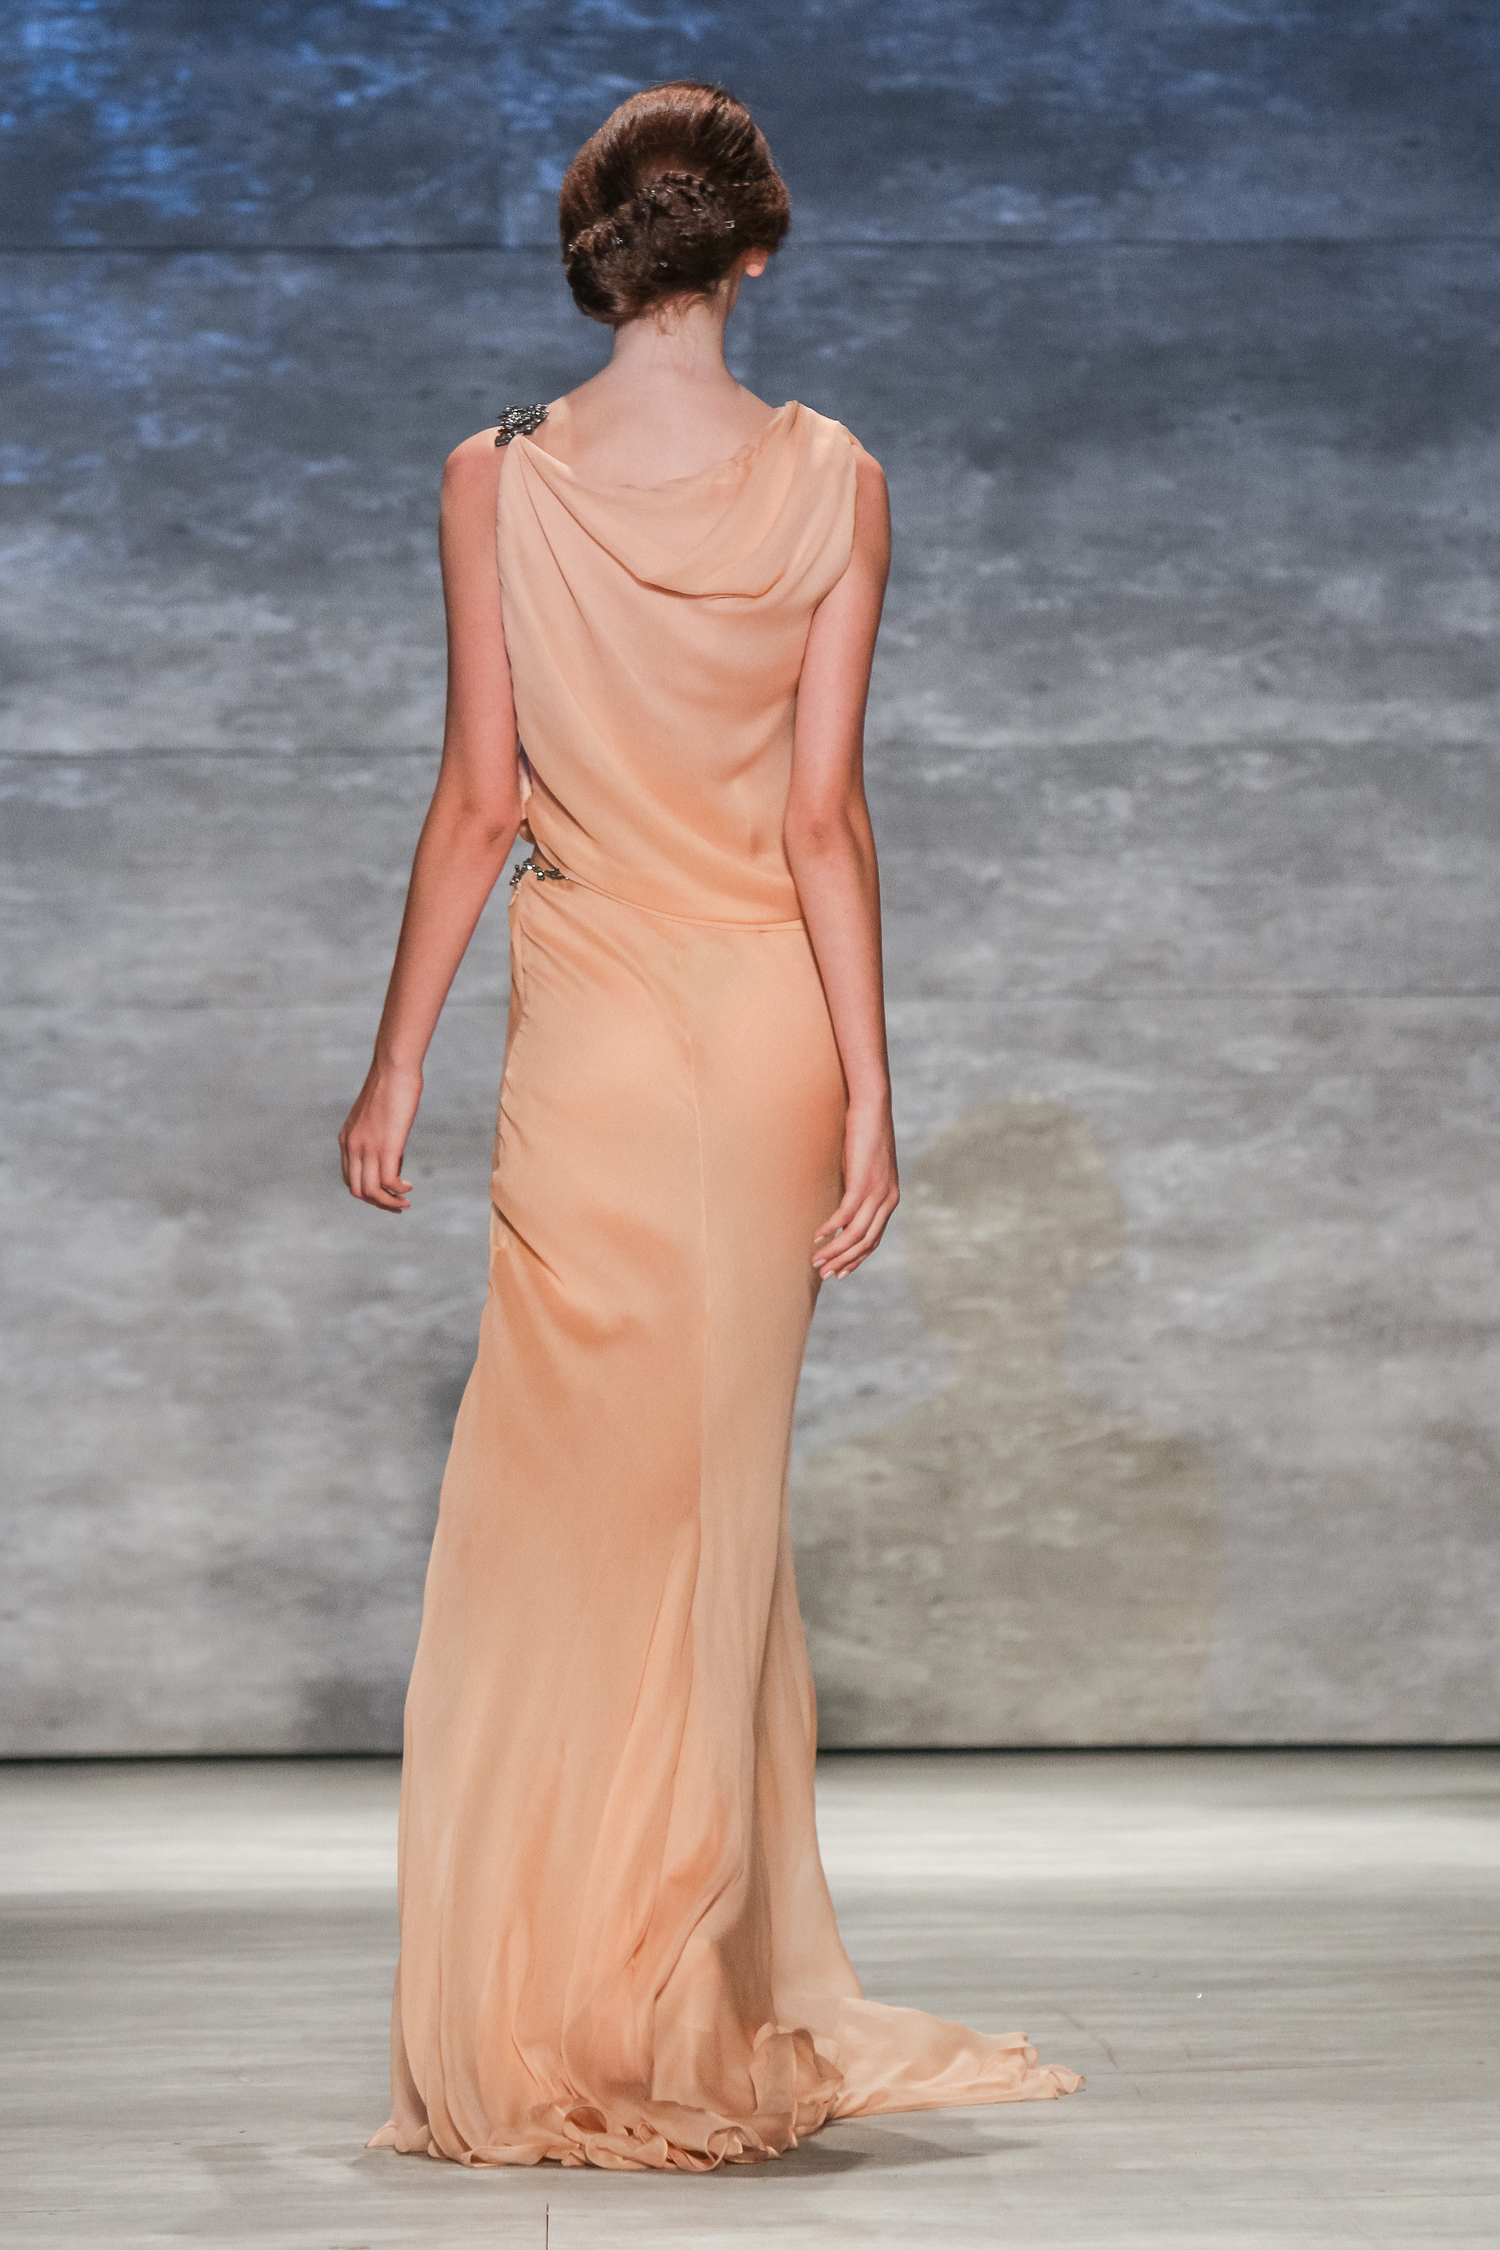 c94dc4838f7f Peach Crinkle Chiffon Gown with Exposed Waist & crystal detail ...